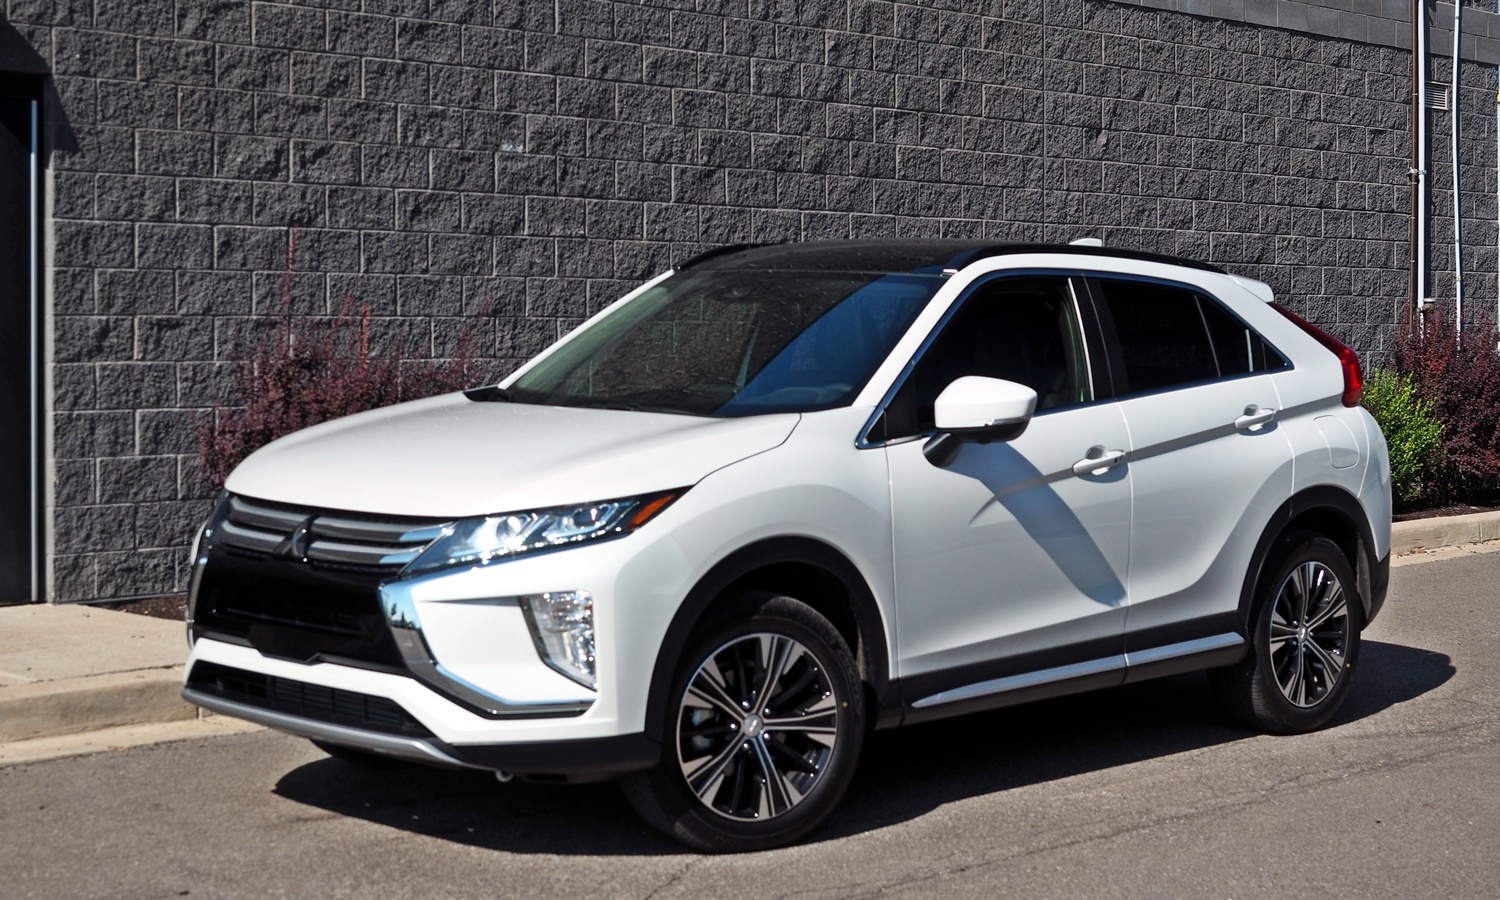 Mitsubishi Eclipse Cross Photos: 2018 Mitsubishi Eclipse Cross front quarter view